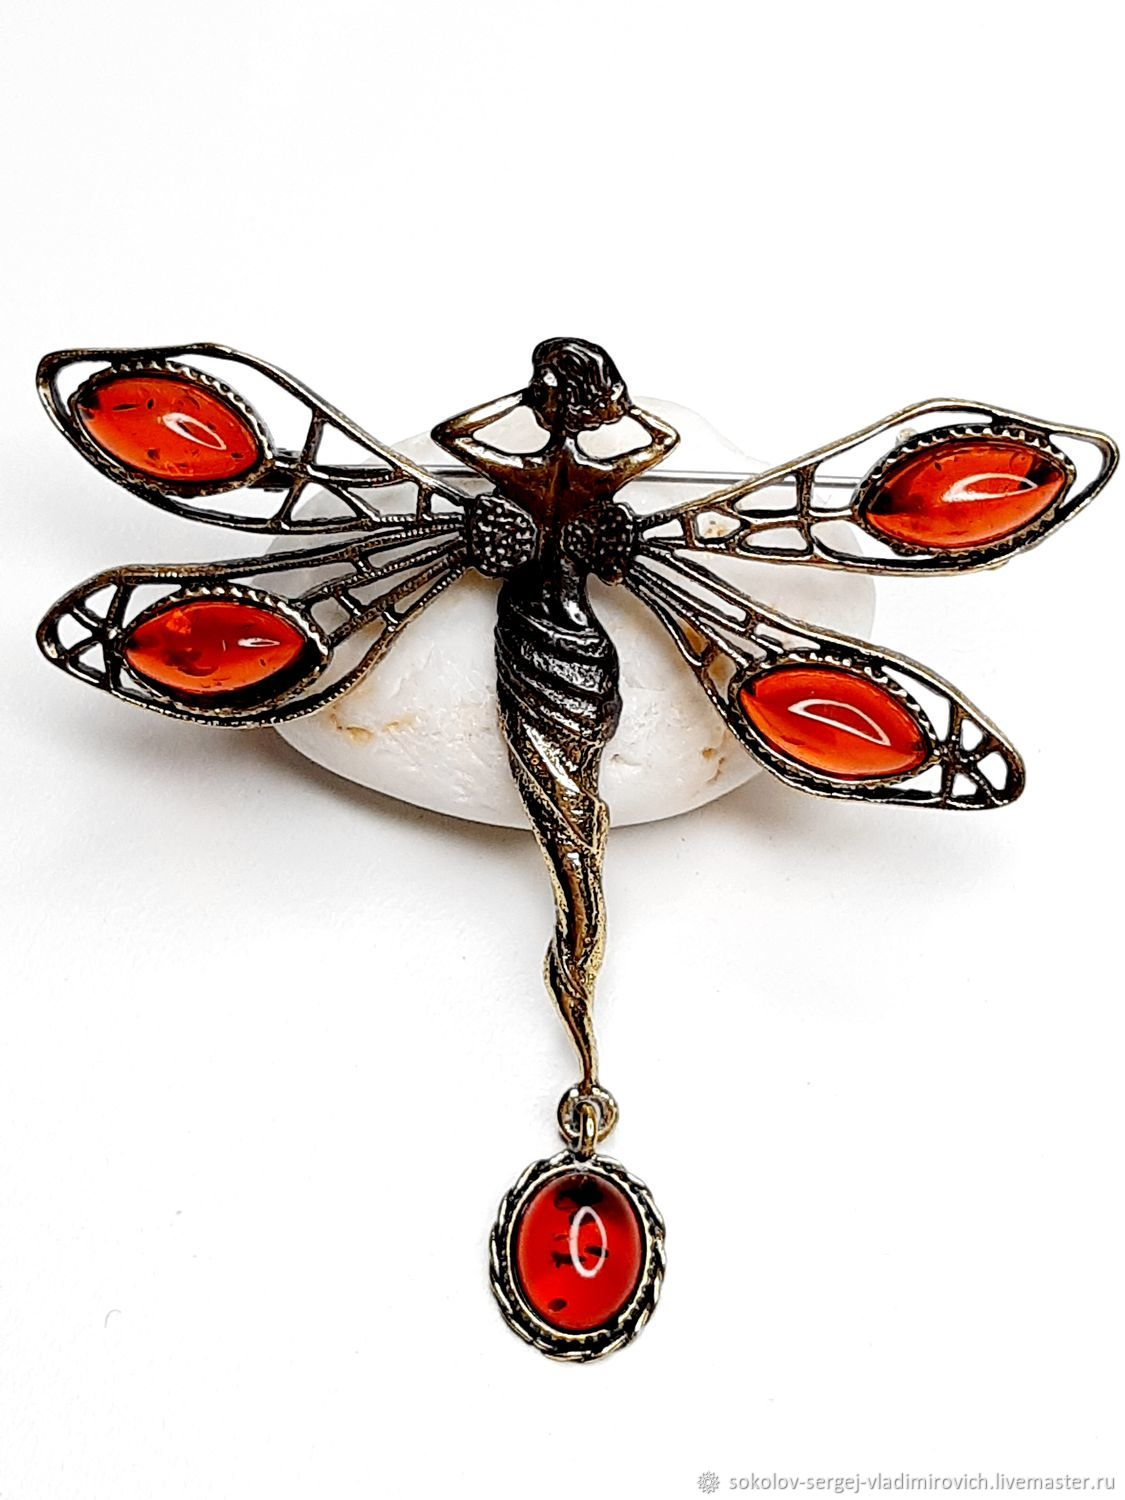 Dragonfly Fairy brooch with a bow, Brooches, Moscow,  Фото №1